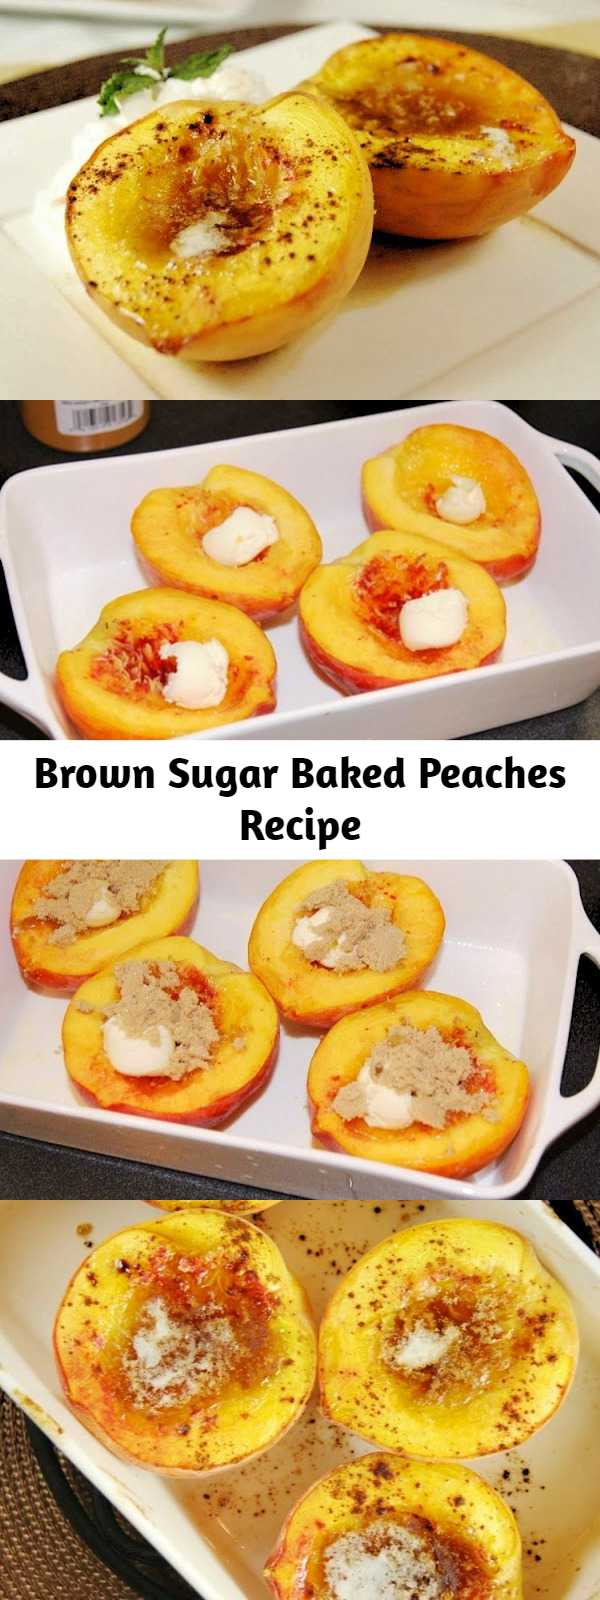 Brown sugar-baked peaches make for a scrumptious ... and low-calorie ... dessert. So good, you certainly won't miss the calories!